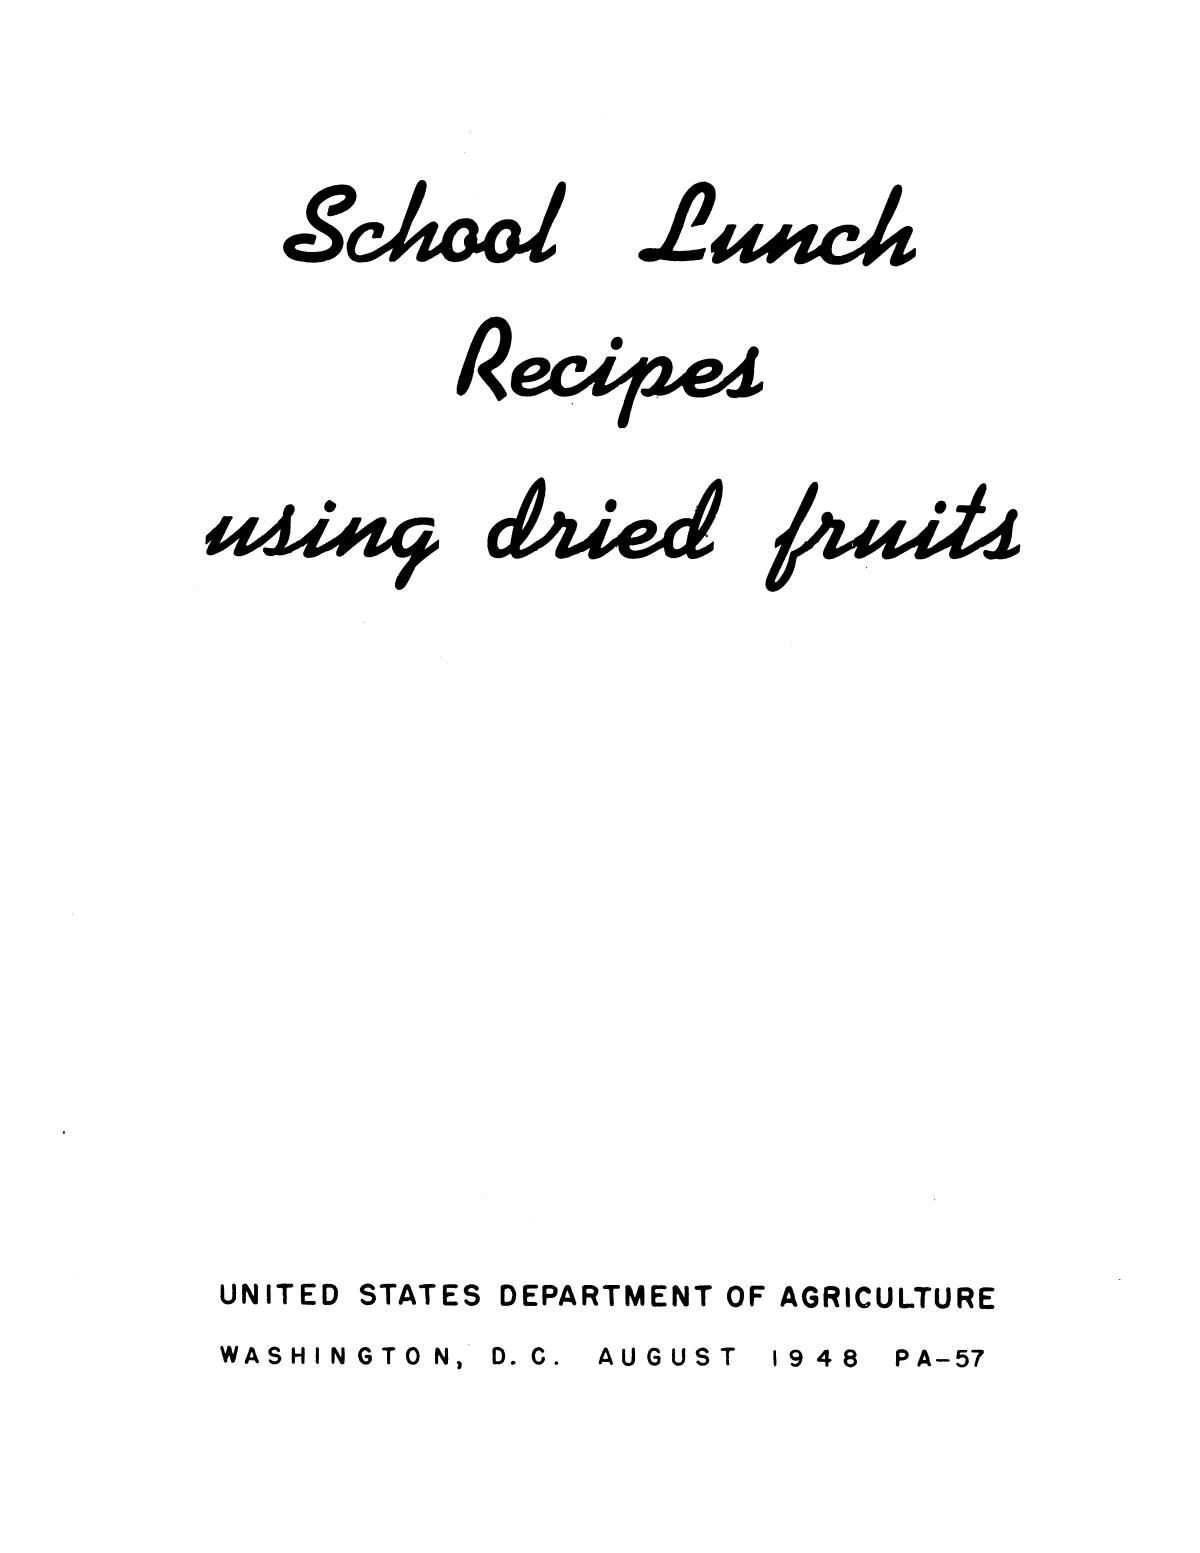 School lunch recipes using dried fruits.                                                                                                      Front Cover